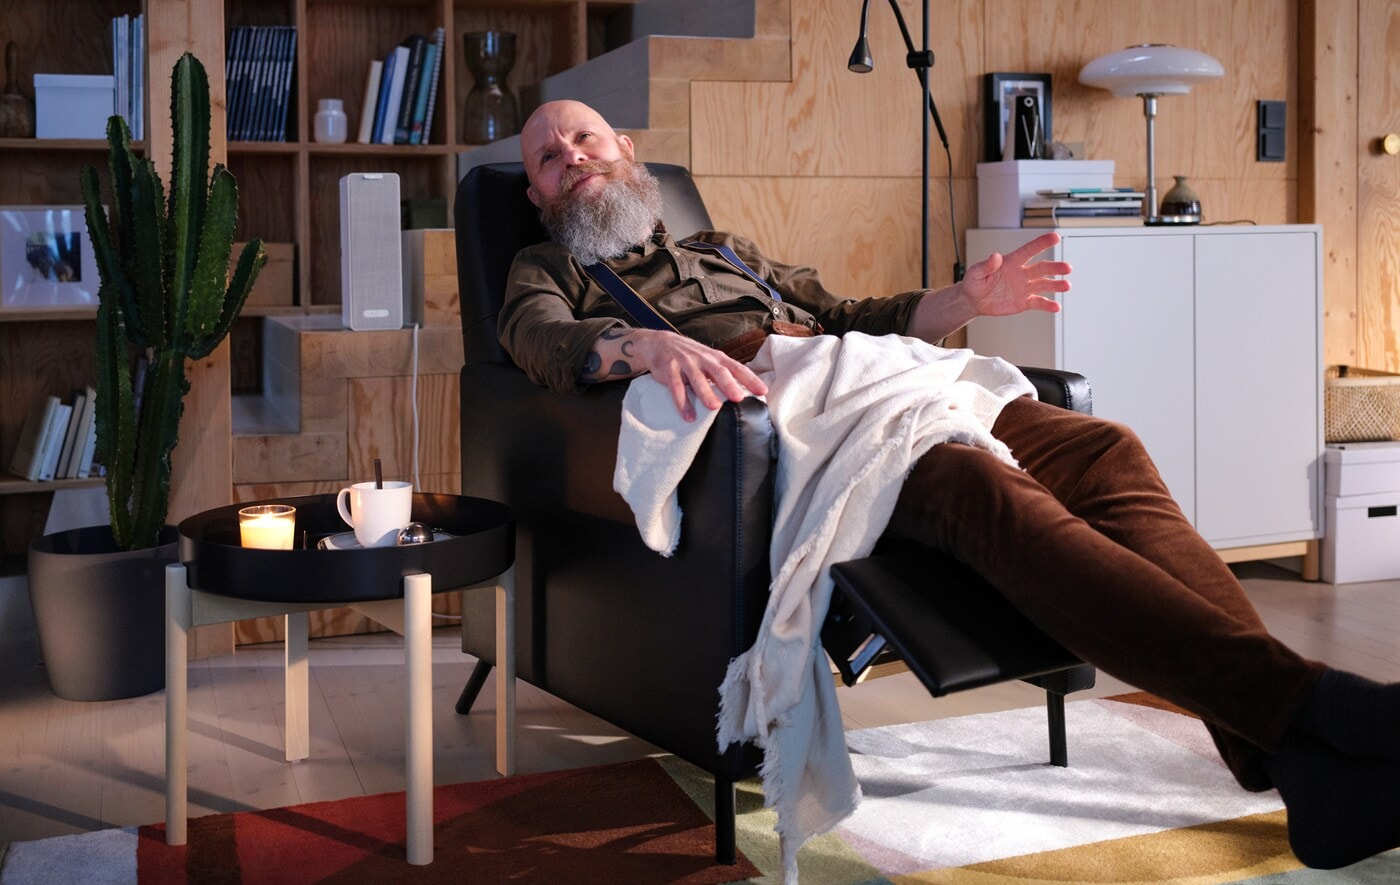 Link to 'At times, inner peace is just the right tune and a recliner away' - image of a man relaxing on a recliner.